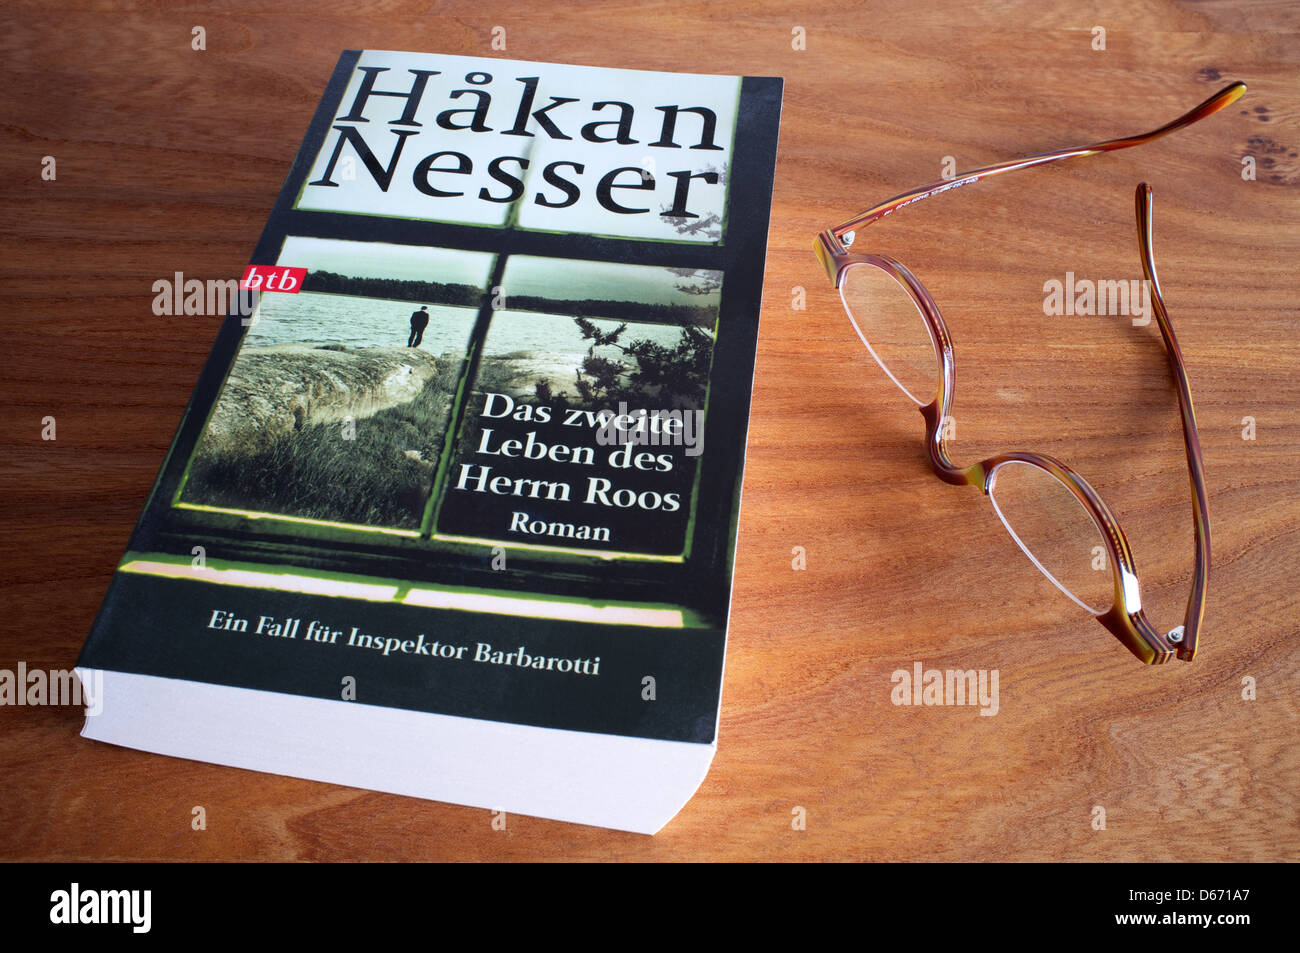 Image result for hakan nesser